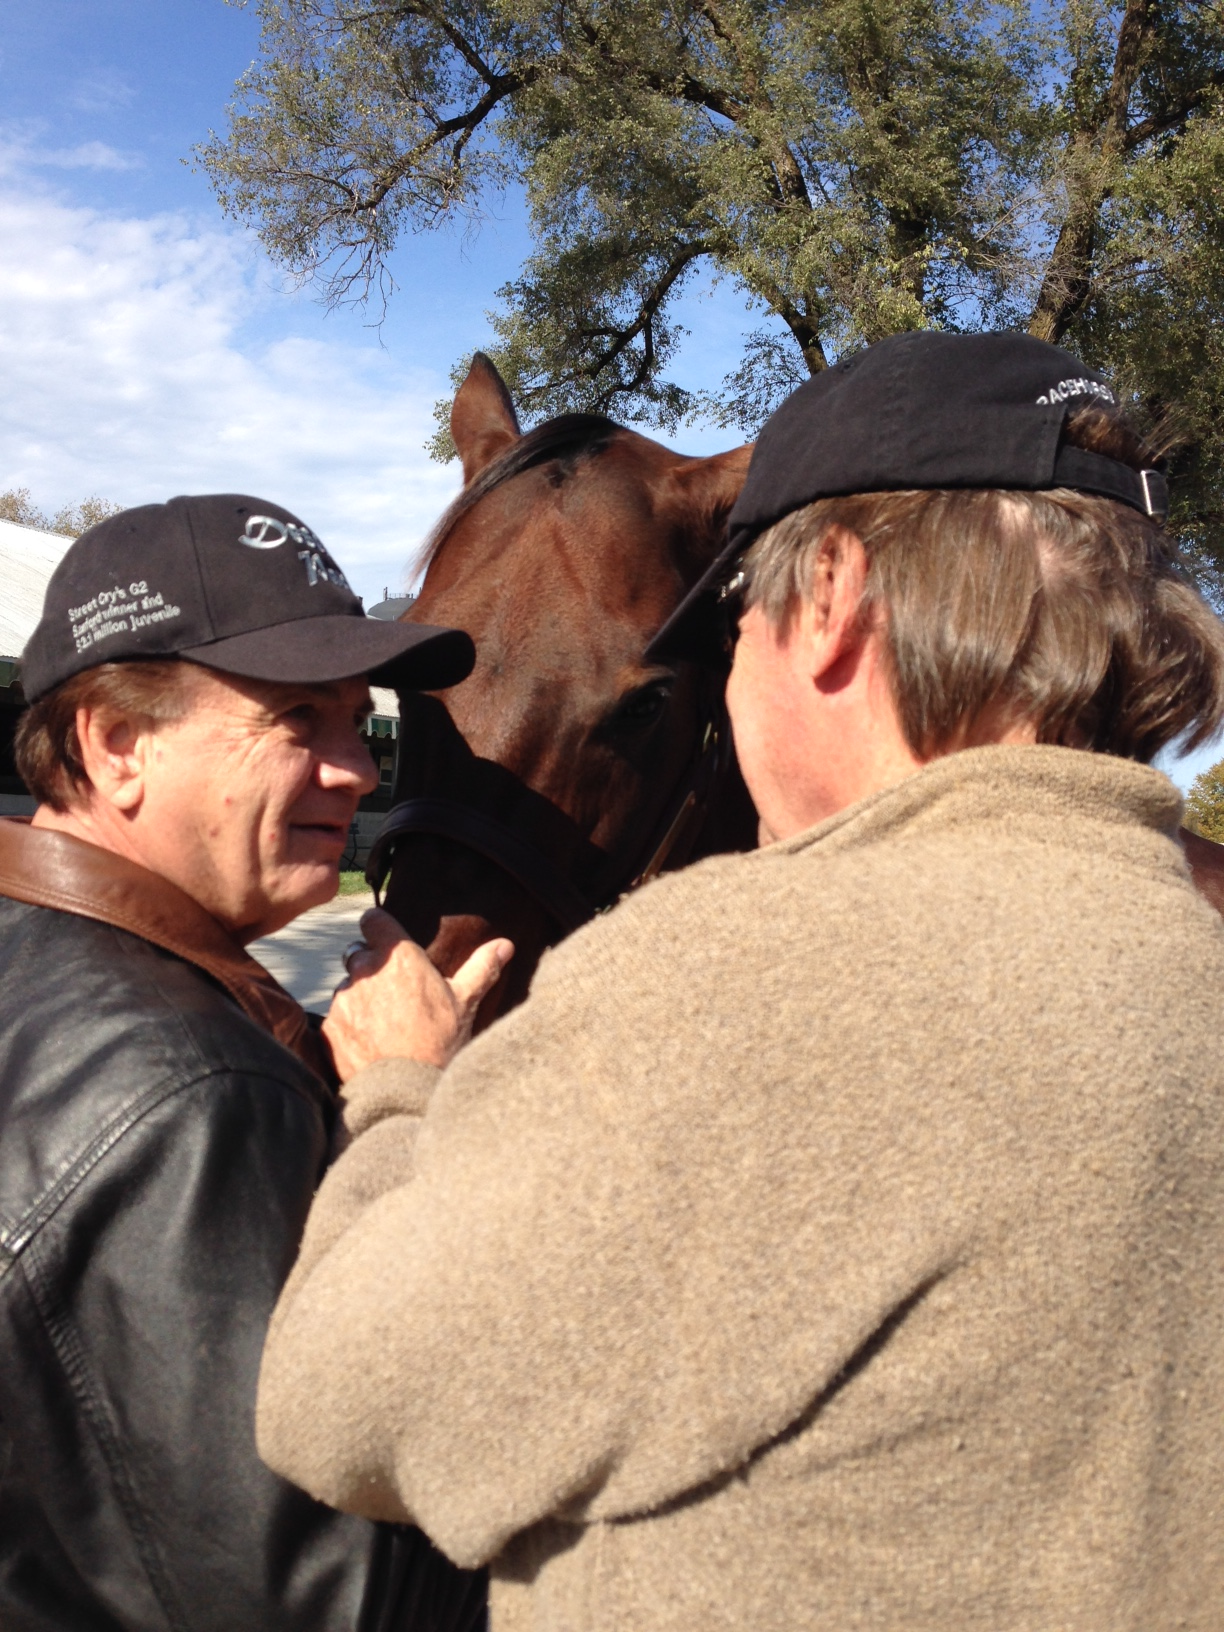 David Smith and Dr Sinatra: an emotional moment saying goodbye to Sage Cat before the she was sold at Keeneland. Lots of history with this G2 producing mare.